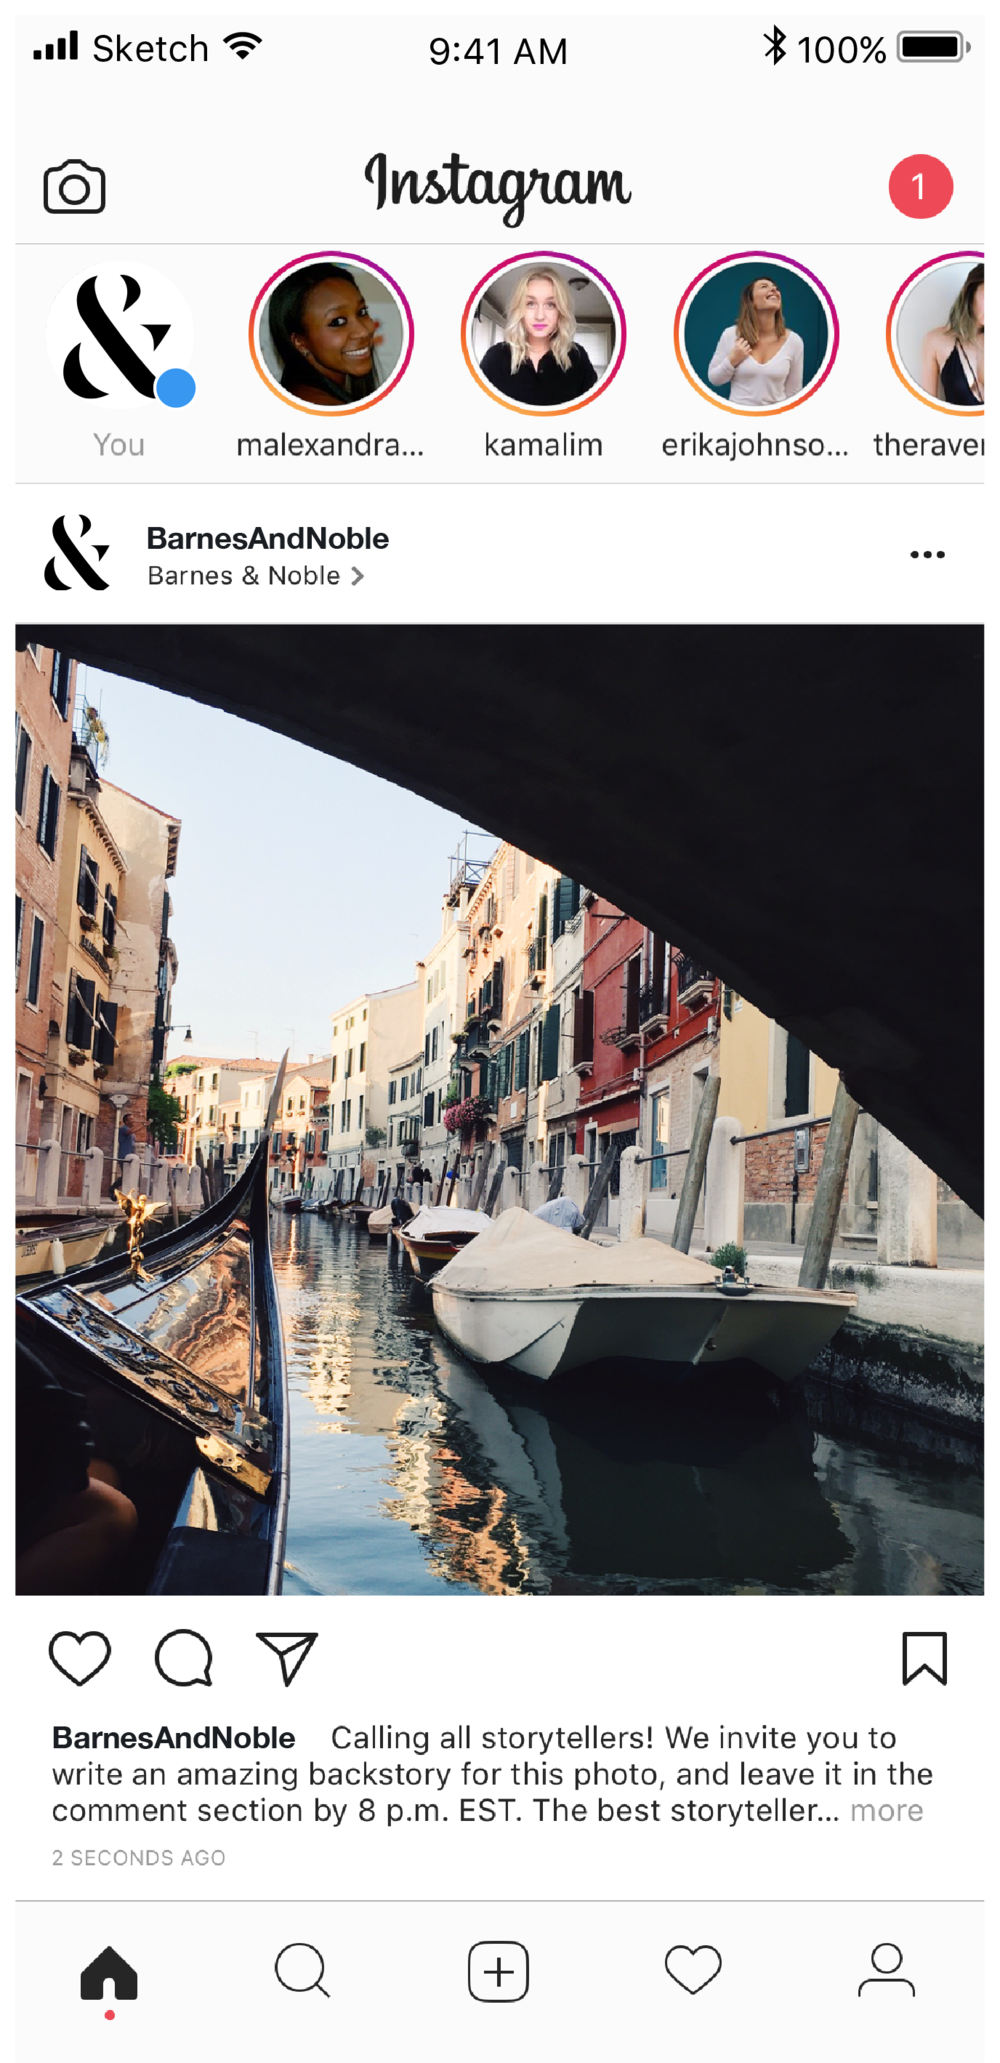 Barnes & Noble Instagram - Create a backstory for sponsored images.